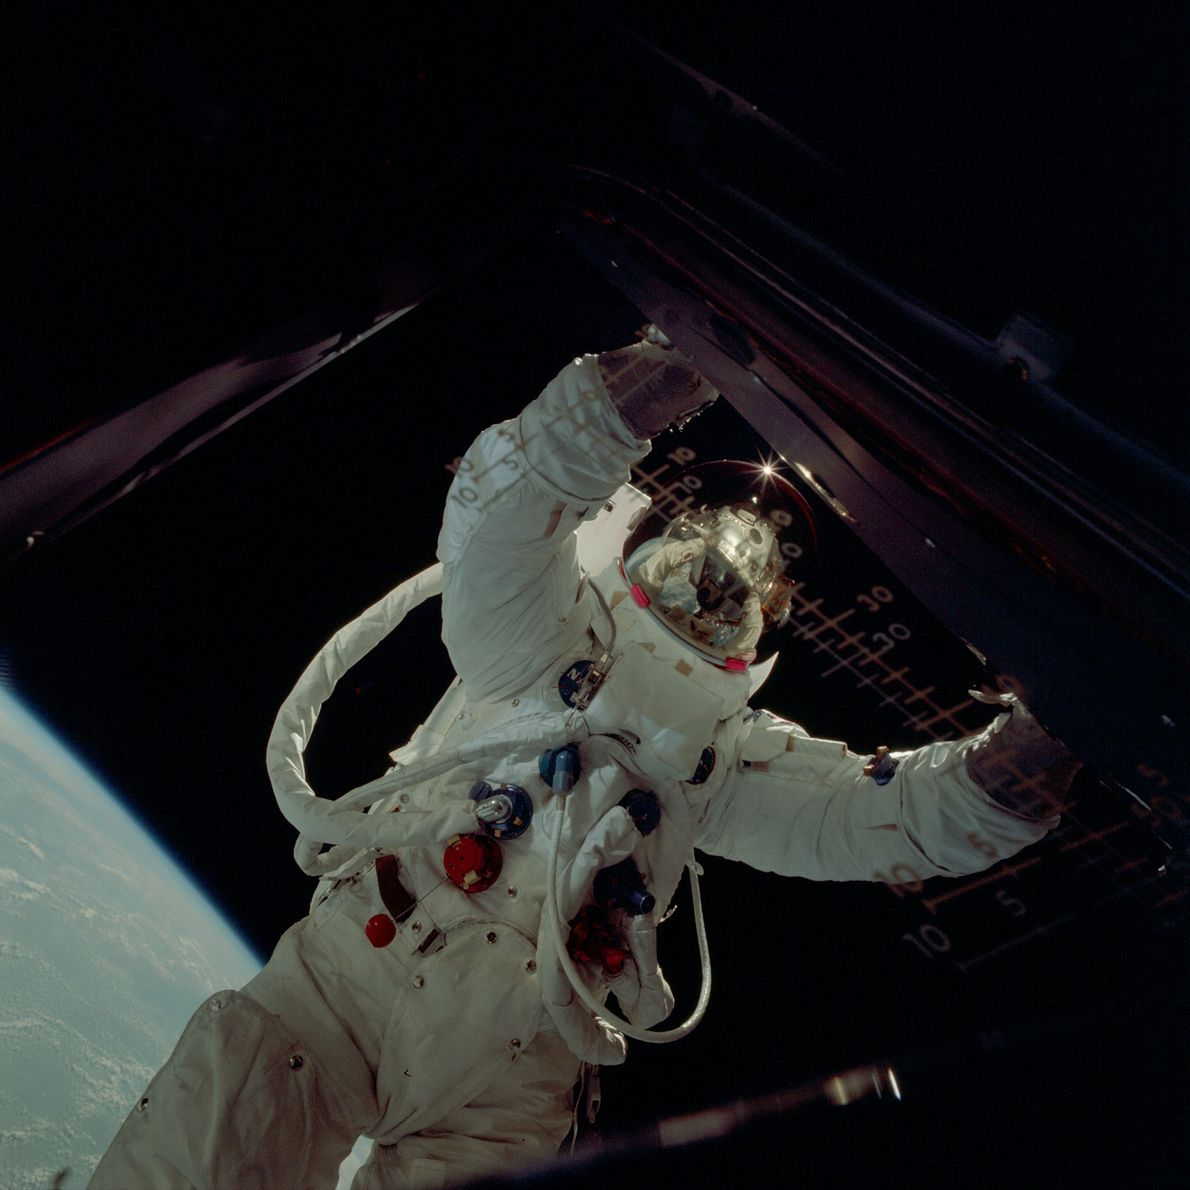 An Apollo astronaut on a spacewalk, photographed from inside the lunar module.